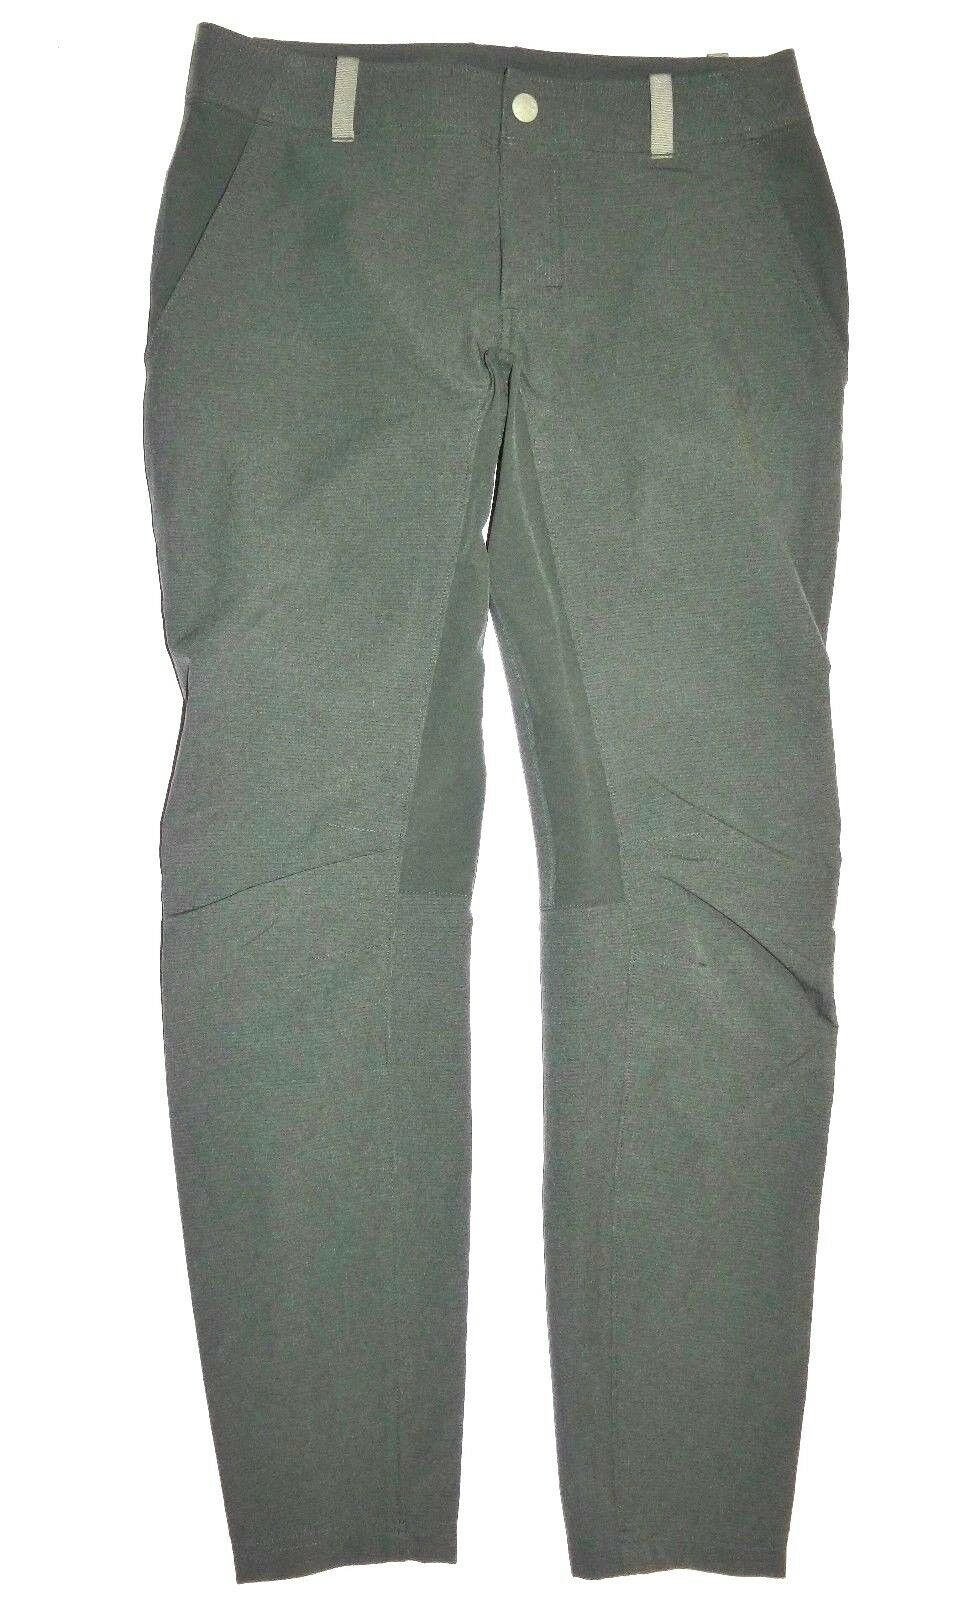 New Under Armour Damenschuhe Storm HeatGear Polyester Polyester Polyester Hiking Pants Größe 4 c405af